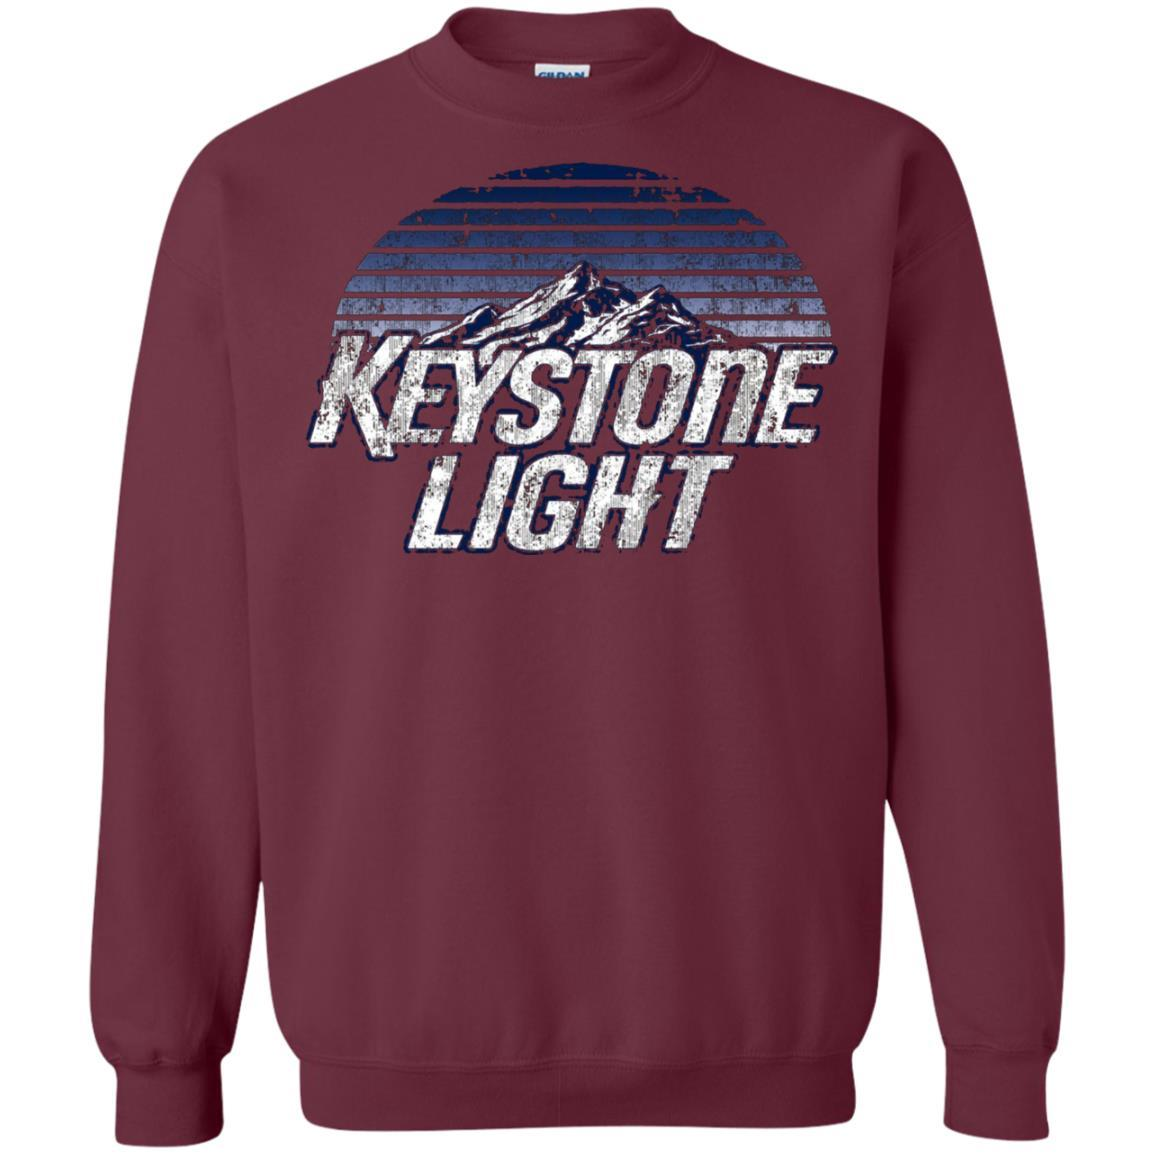 Keystone Light Beer Classic Look - Pullover Sweatshirt Maroon / 5XL